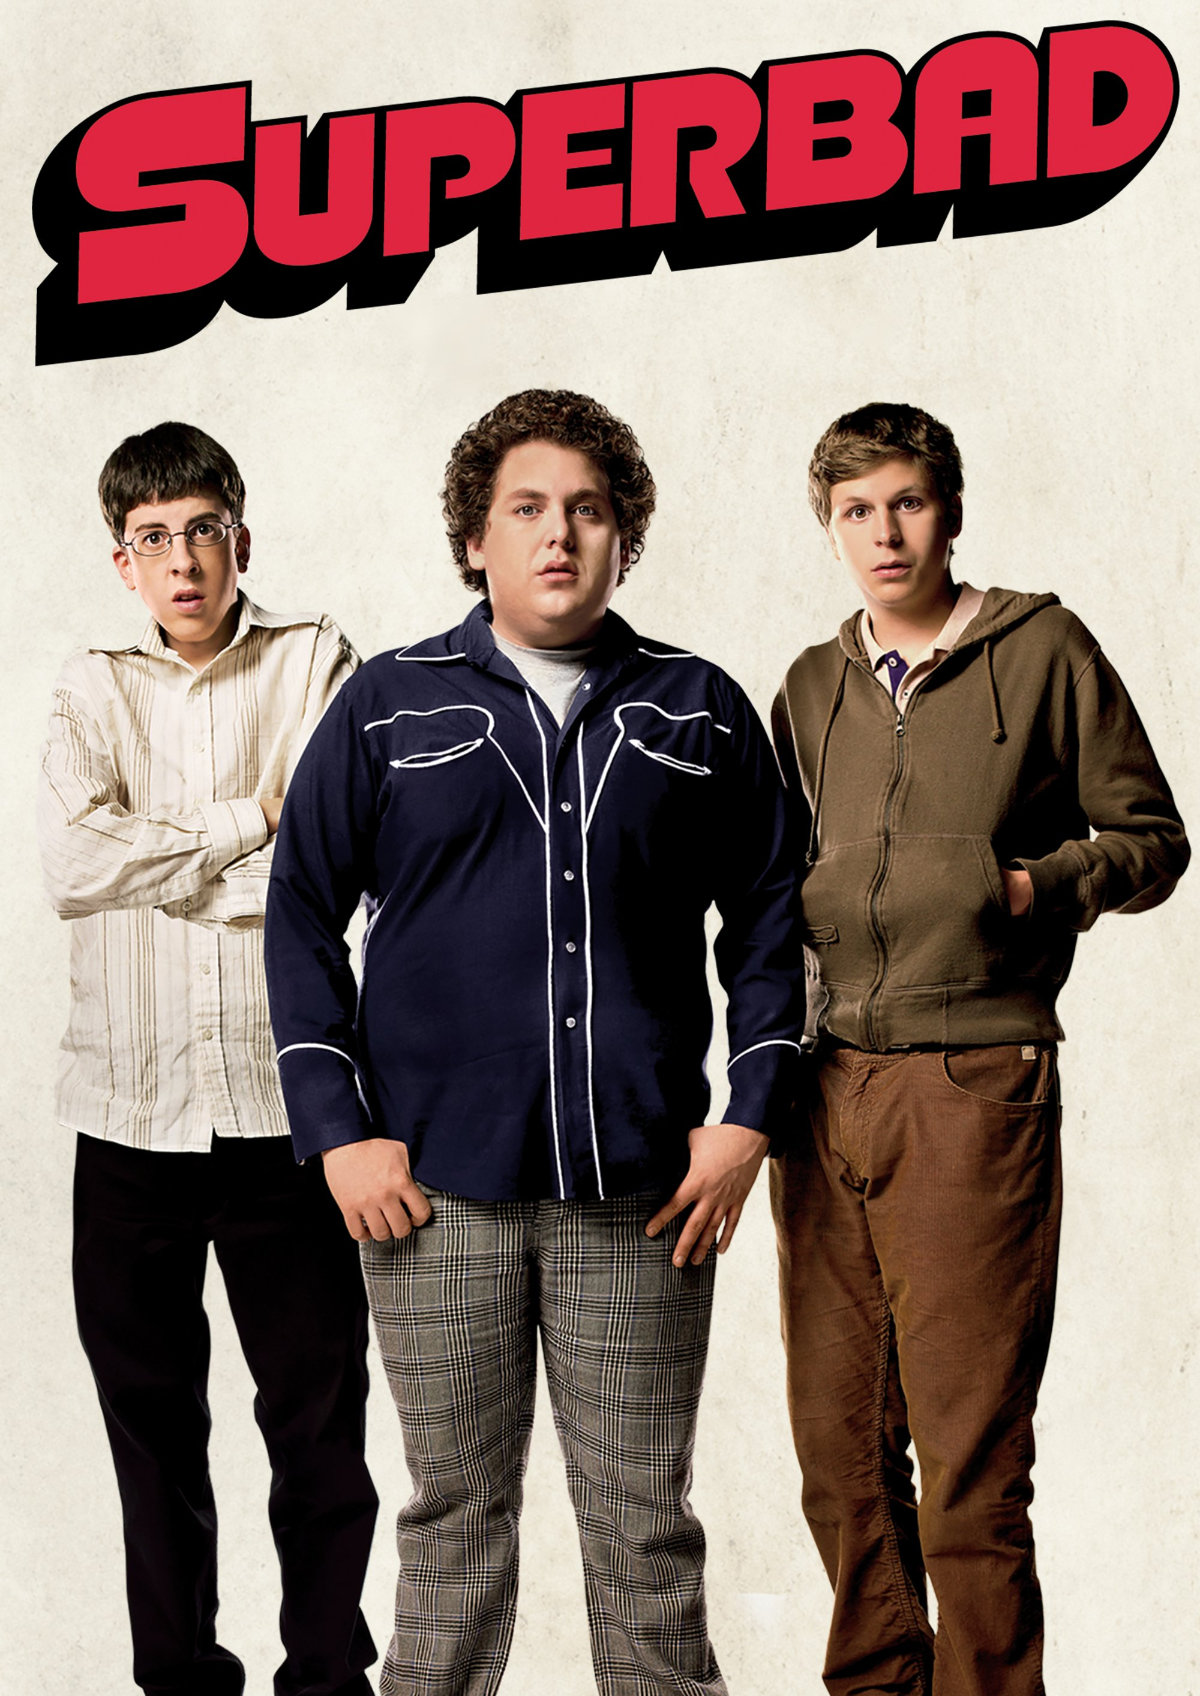 'Superbad' movie poster